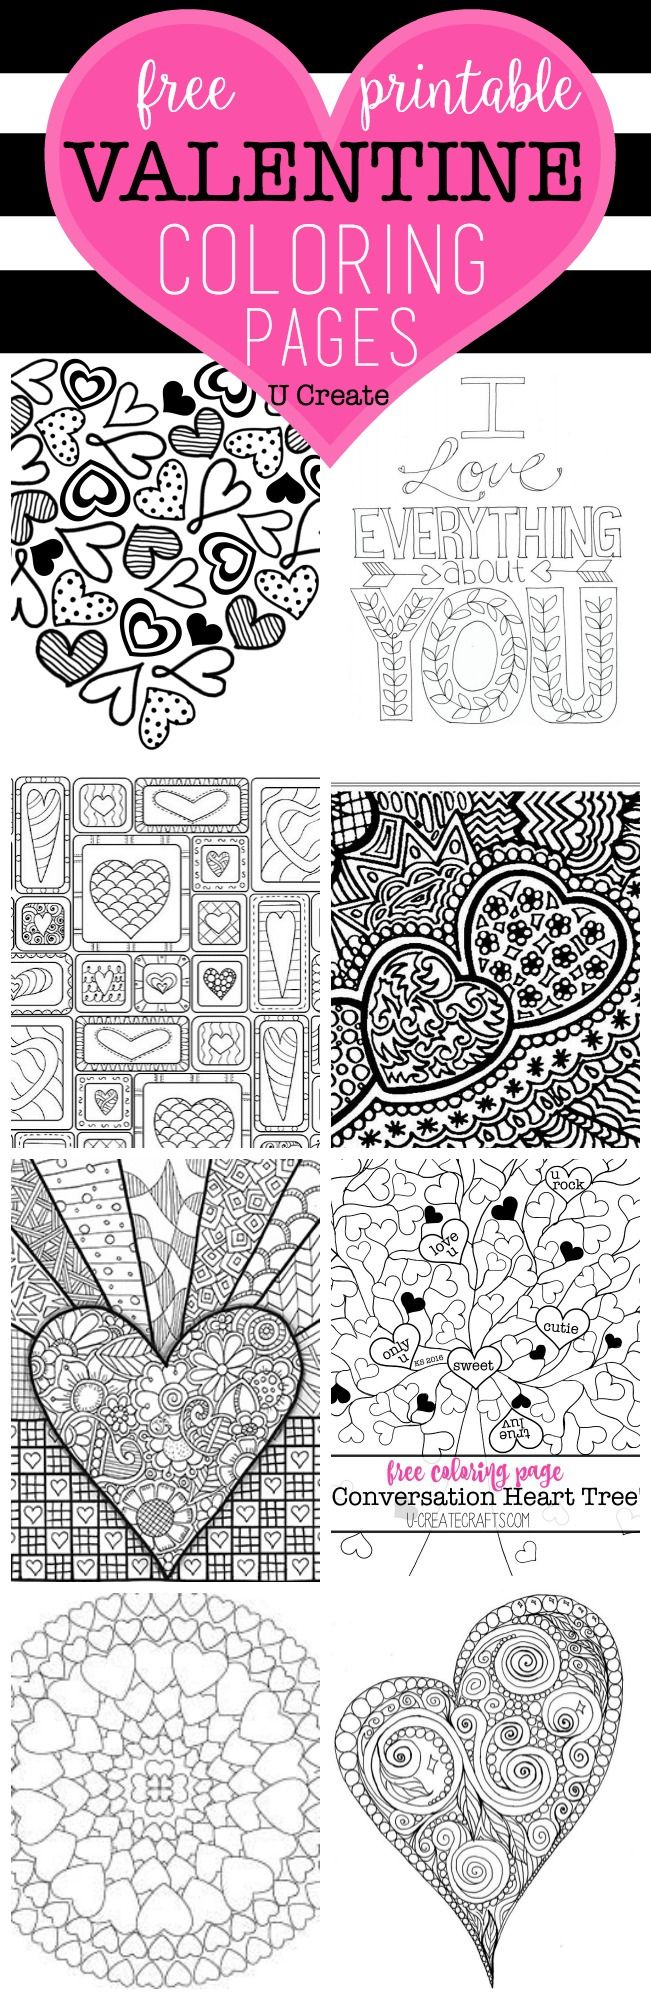 Free coloring pages for young adults - The Free Valentine Coloring Pages Are Here You Can T Walk Into A Store Without Seeing Those Popular Adult Coloring Books Everywhere And You Are Sure To